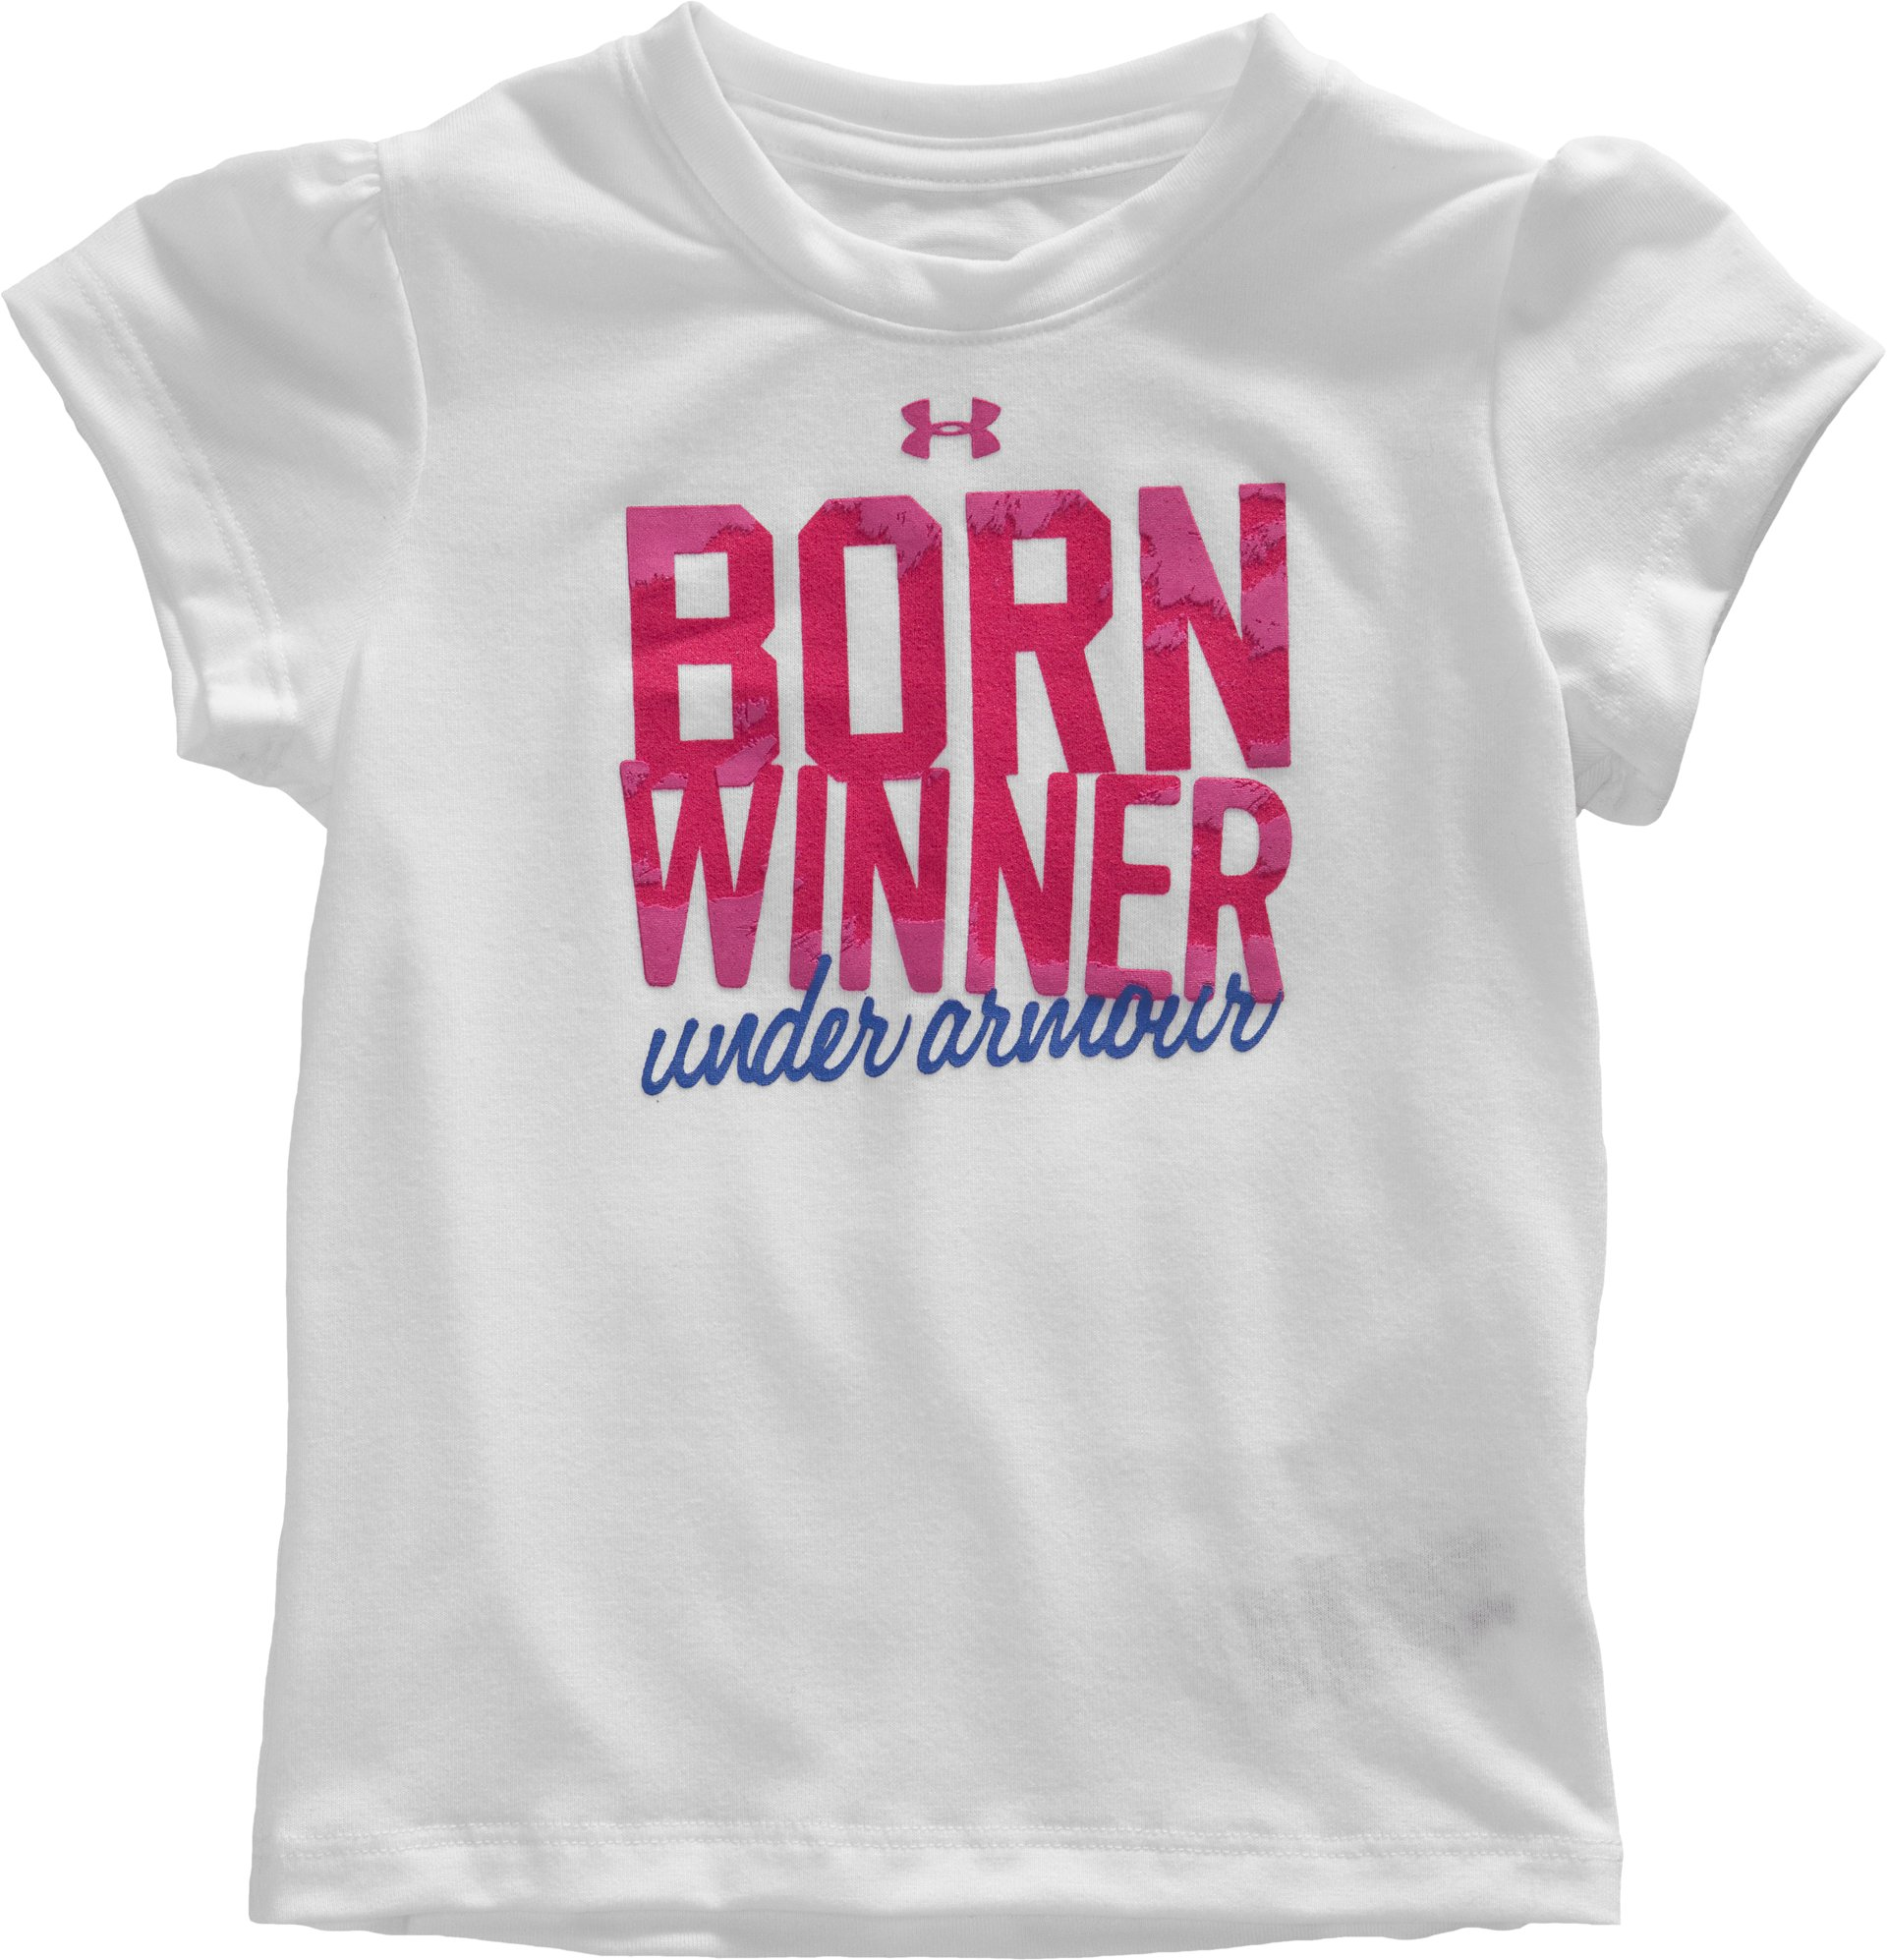 Girls' 4-7 Born Winner T-Shirt, White